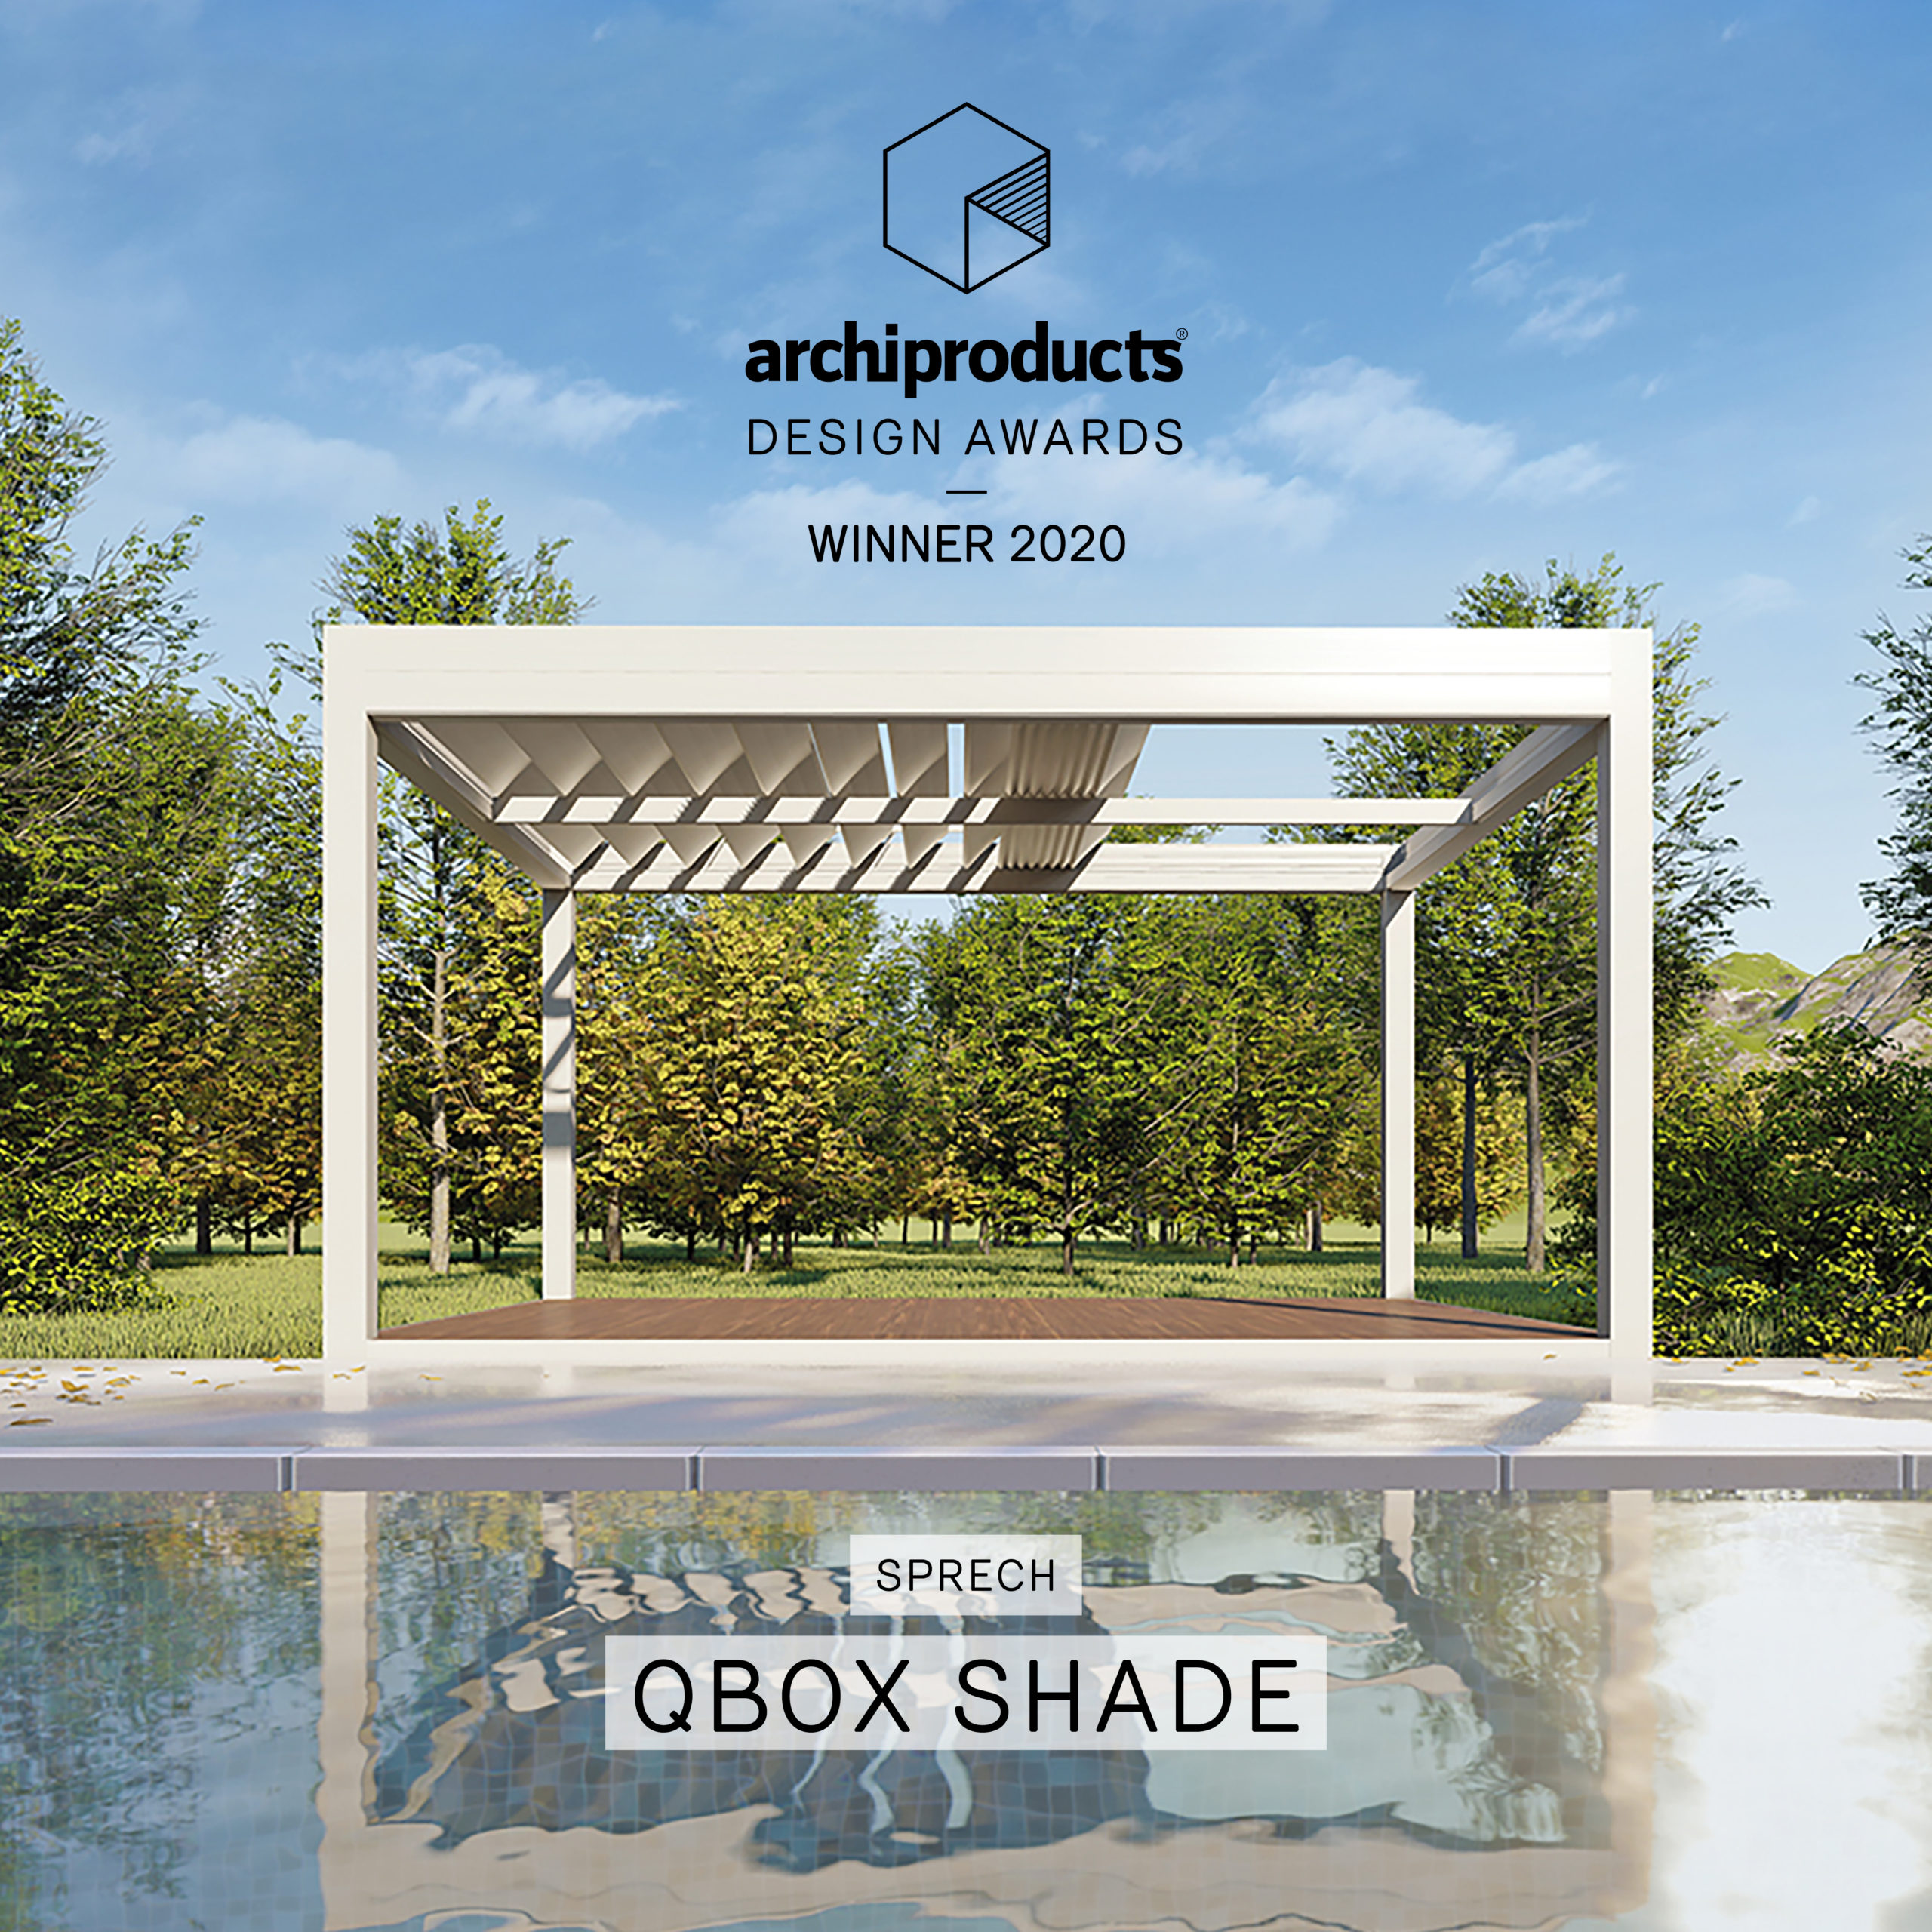 Archiproducts Design Awards 2020 Xbox shade sprech